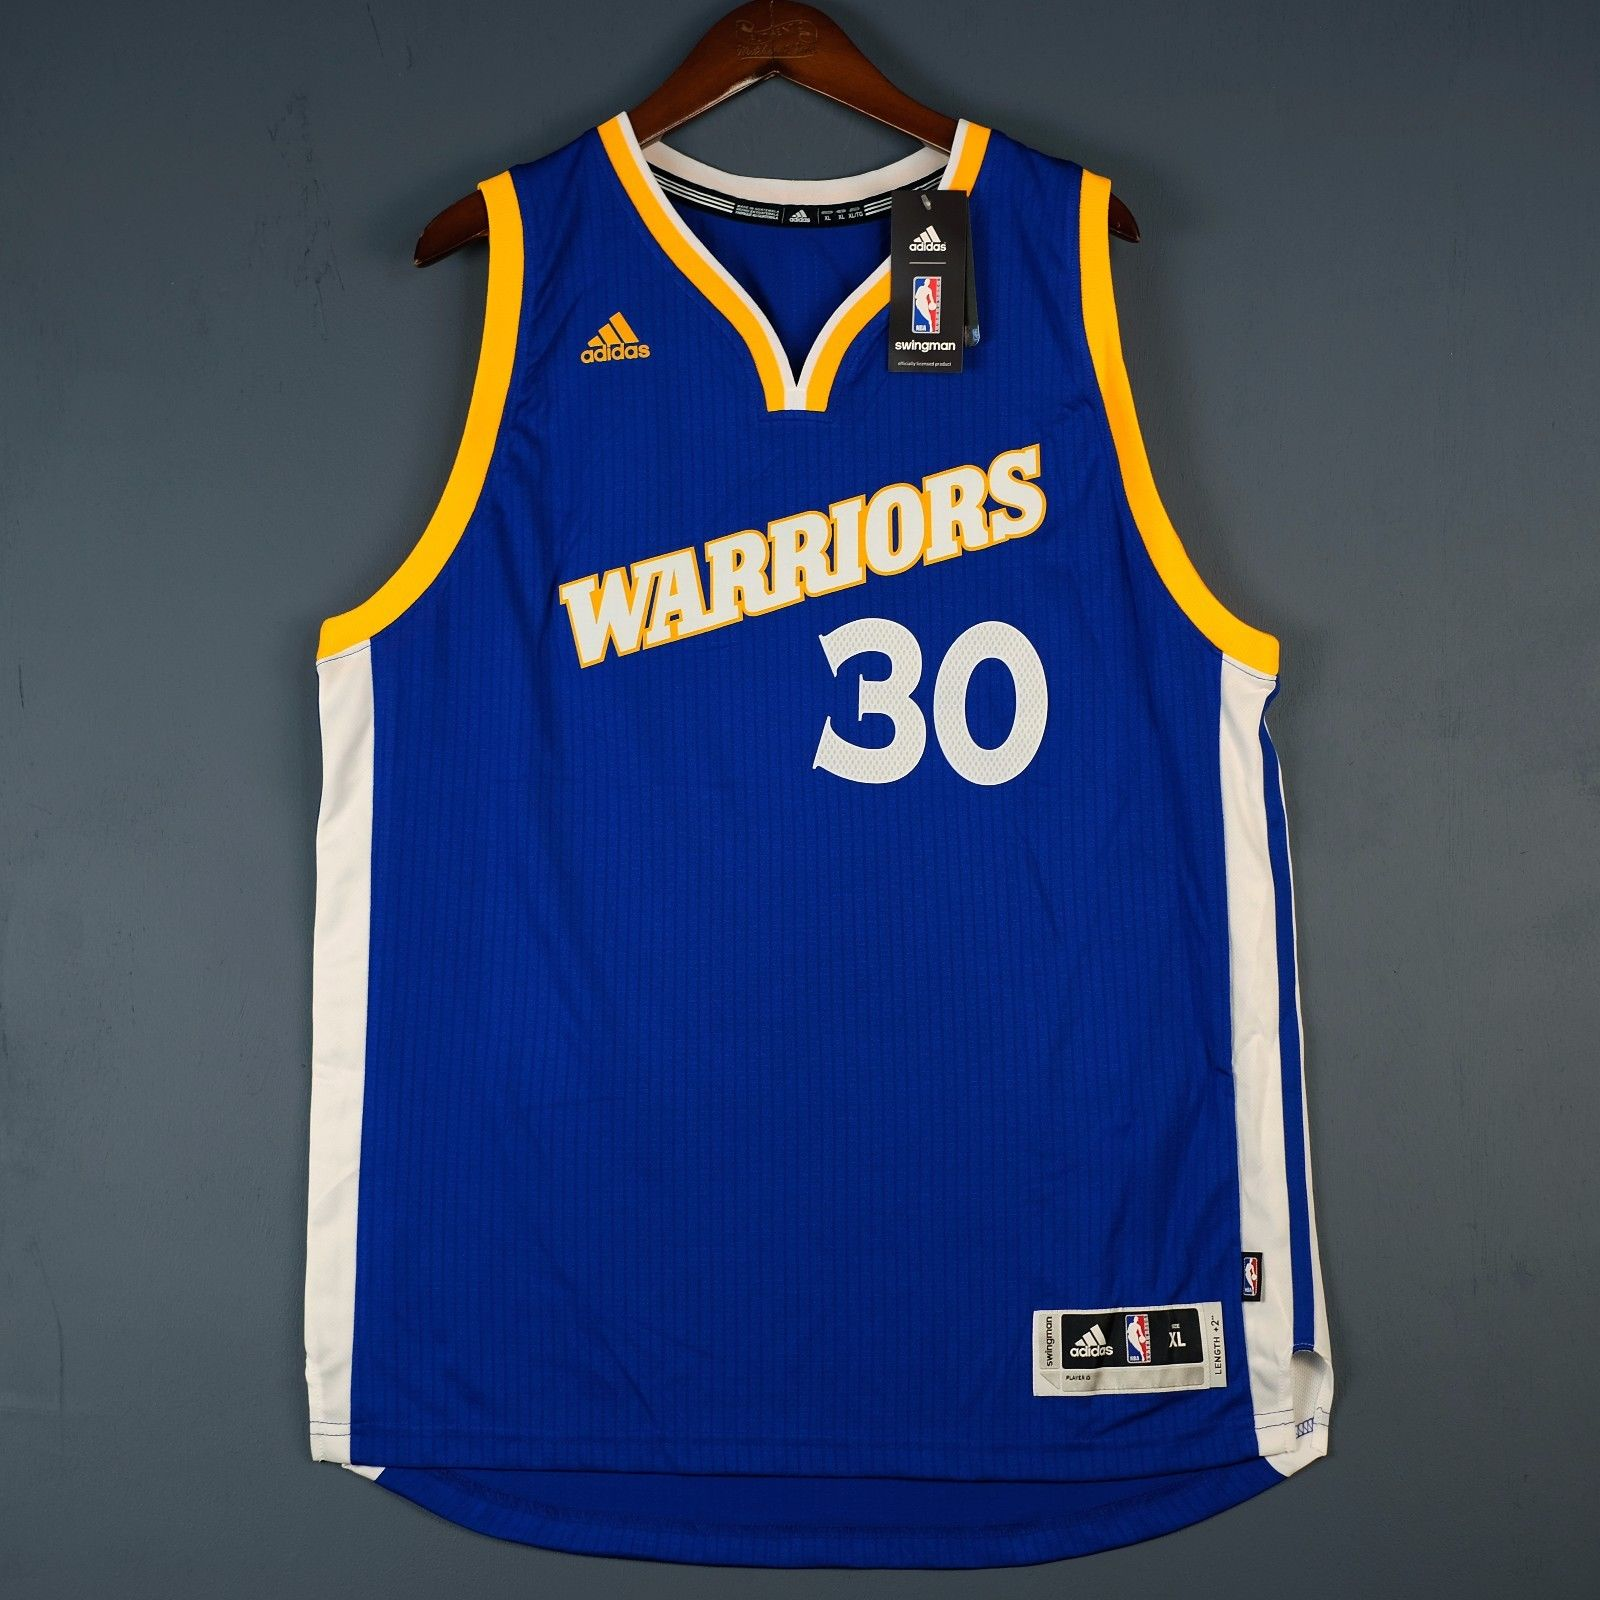 b81384cec55 Stephen Curry Golden State Warriors Adidas Swingman Jersey · Stephen Curry  Golden State Warriors Adidas Swingman Jersey